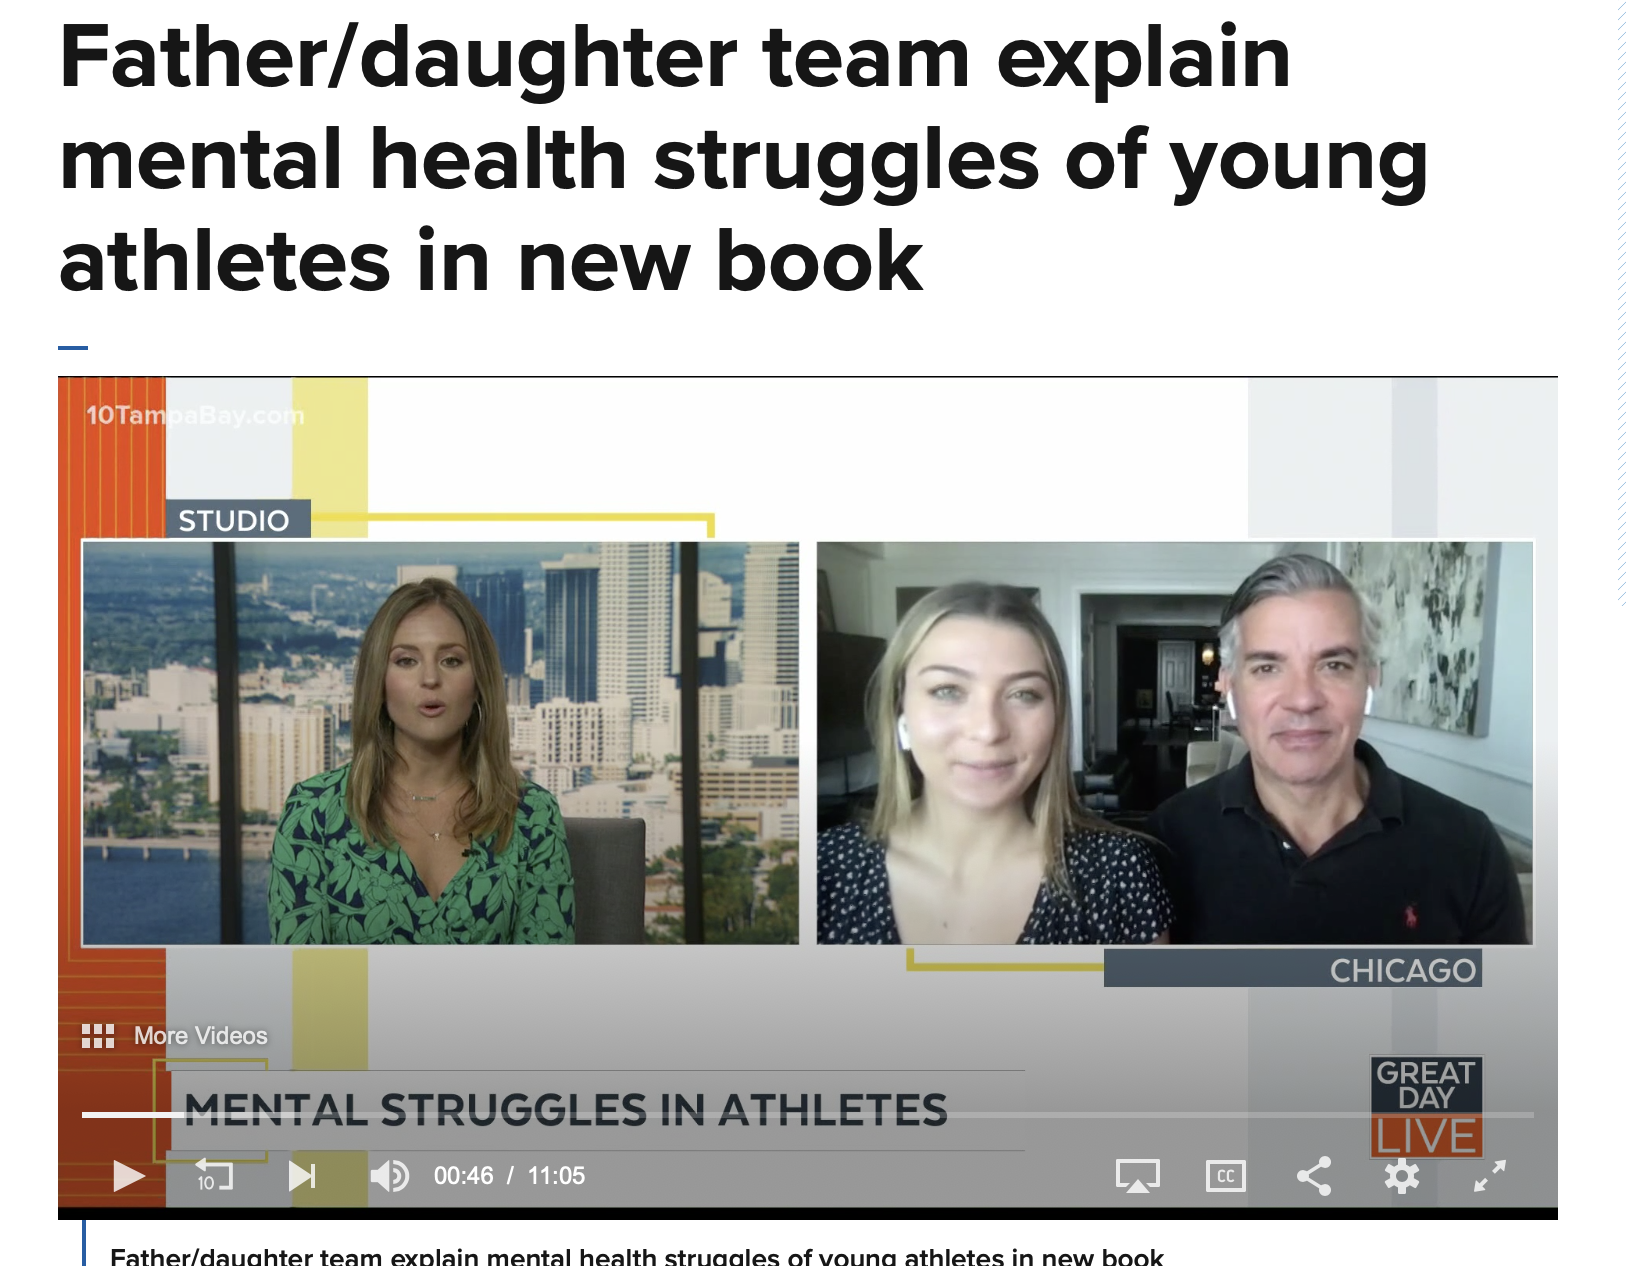 Father/daughter team explain mental health struggles of young athletes in new book